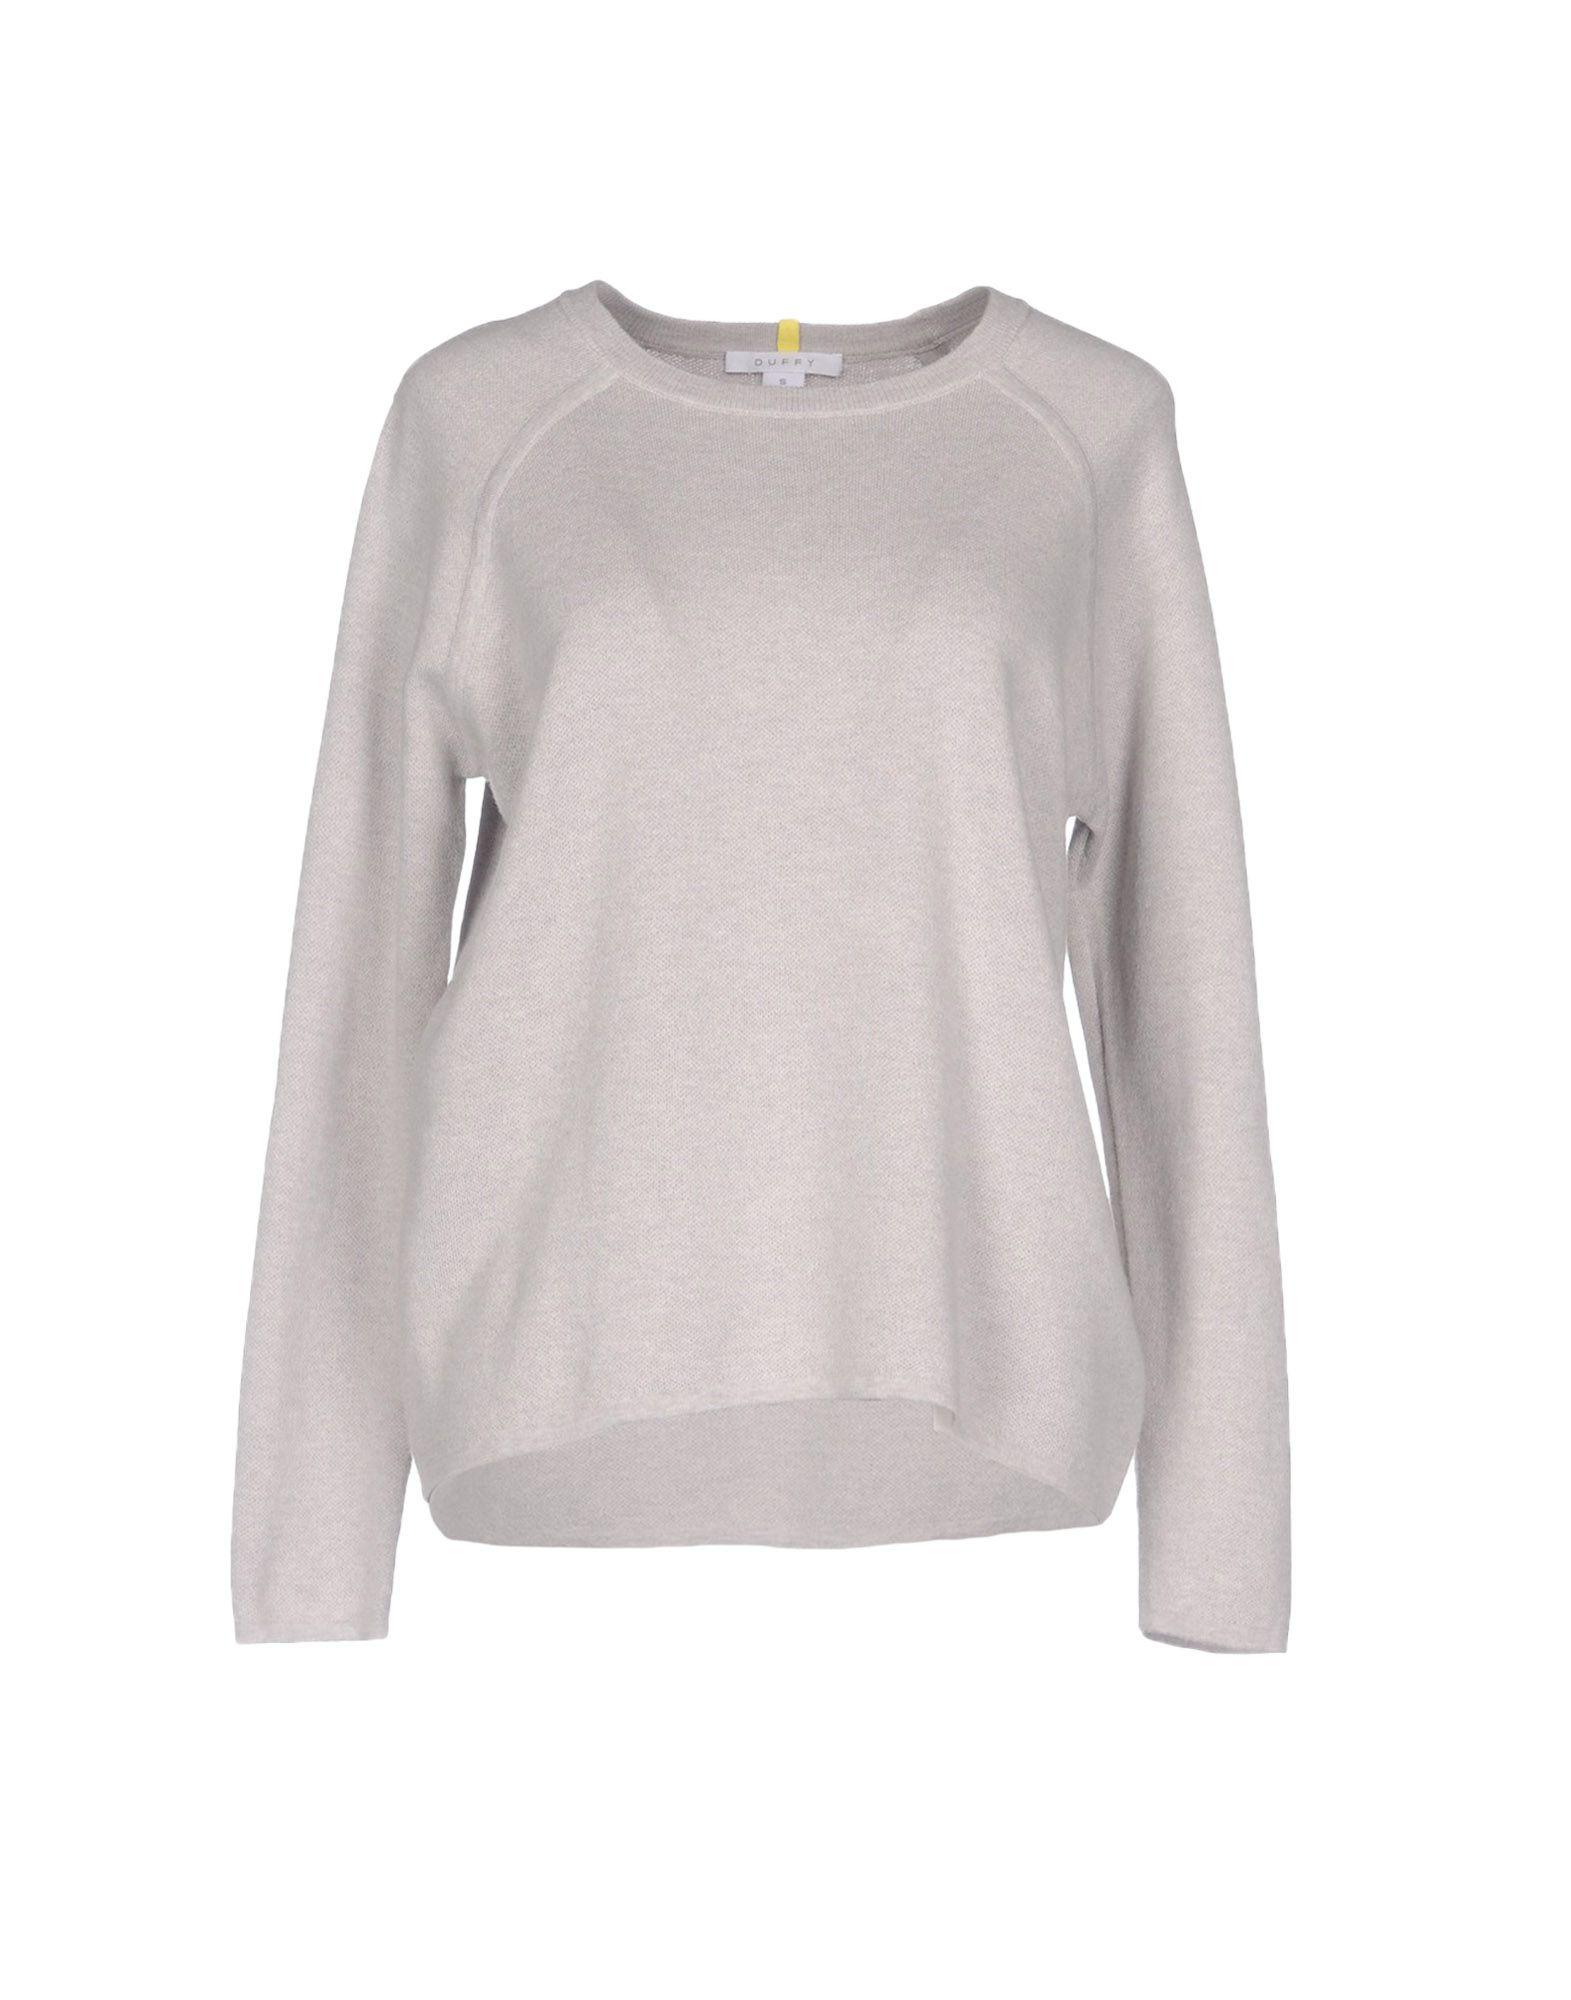 DUFFY Sweater in Light Grey